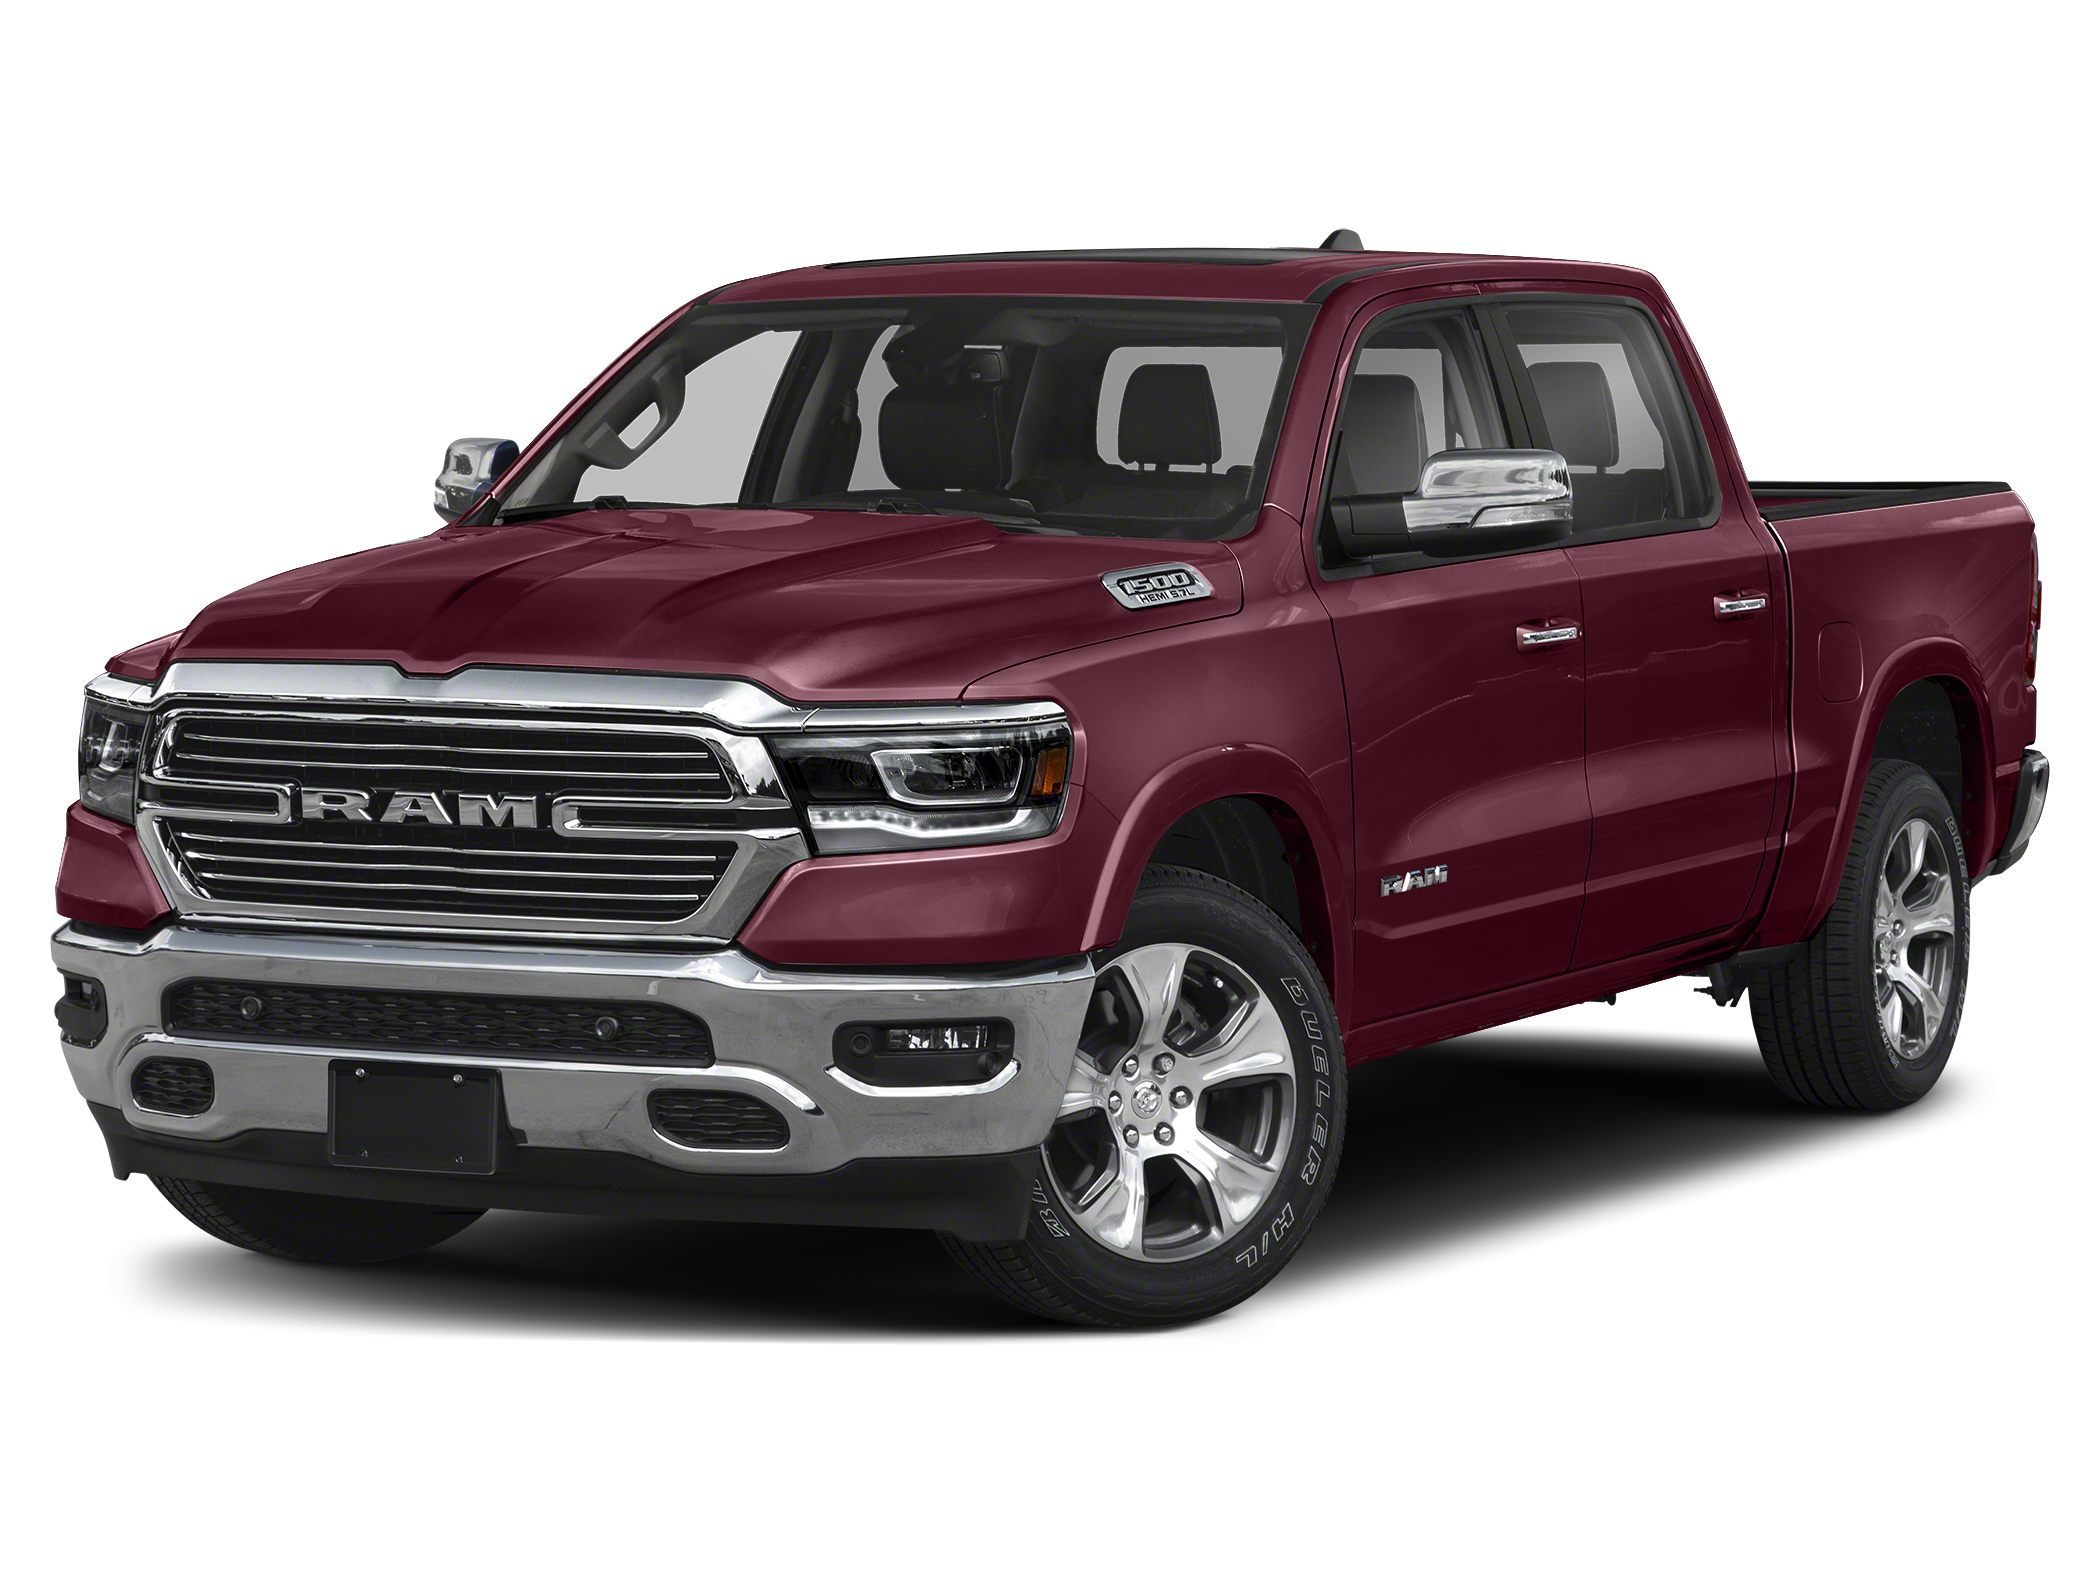 2019 Ram All-New 1500 Laramie Leather S/Roof Luxury Loaded Crew Cab